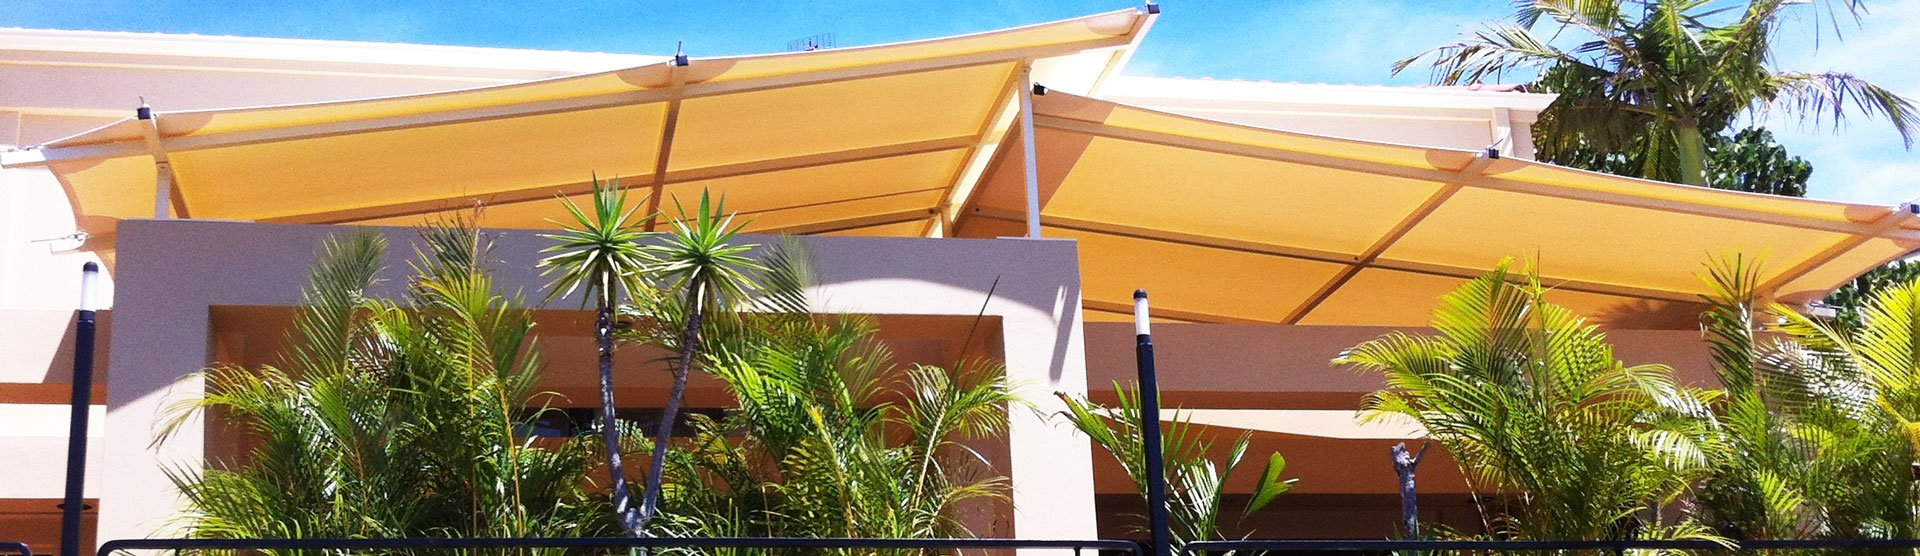 Outdoor Shade Sail Patio